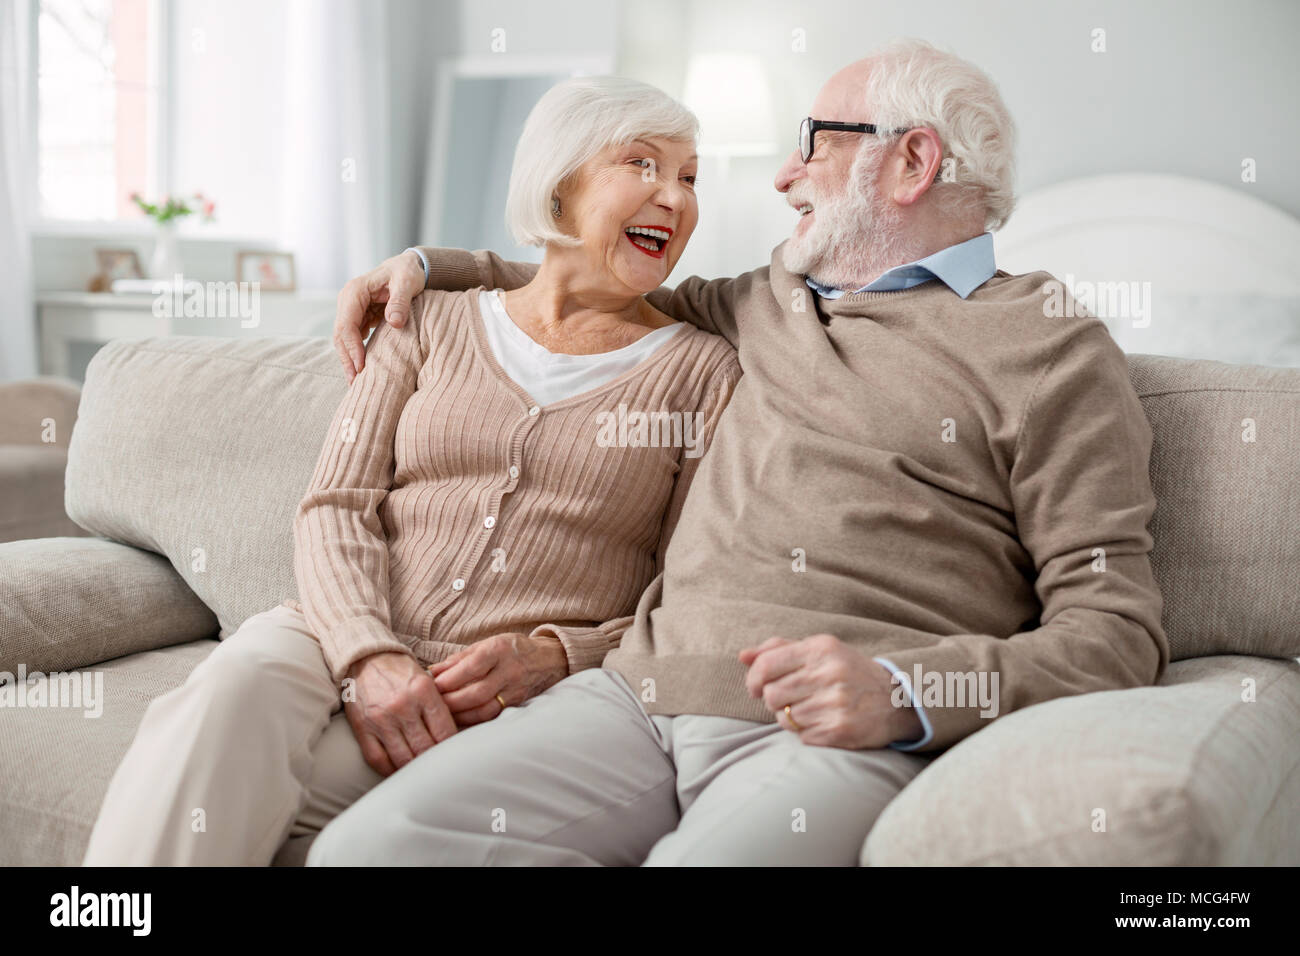 Joyful elderly couple being in a great mood - Stock Image